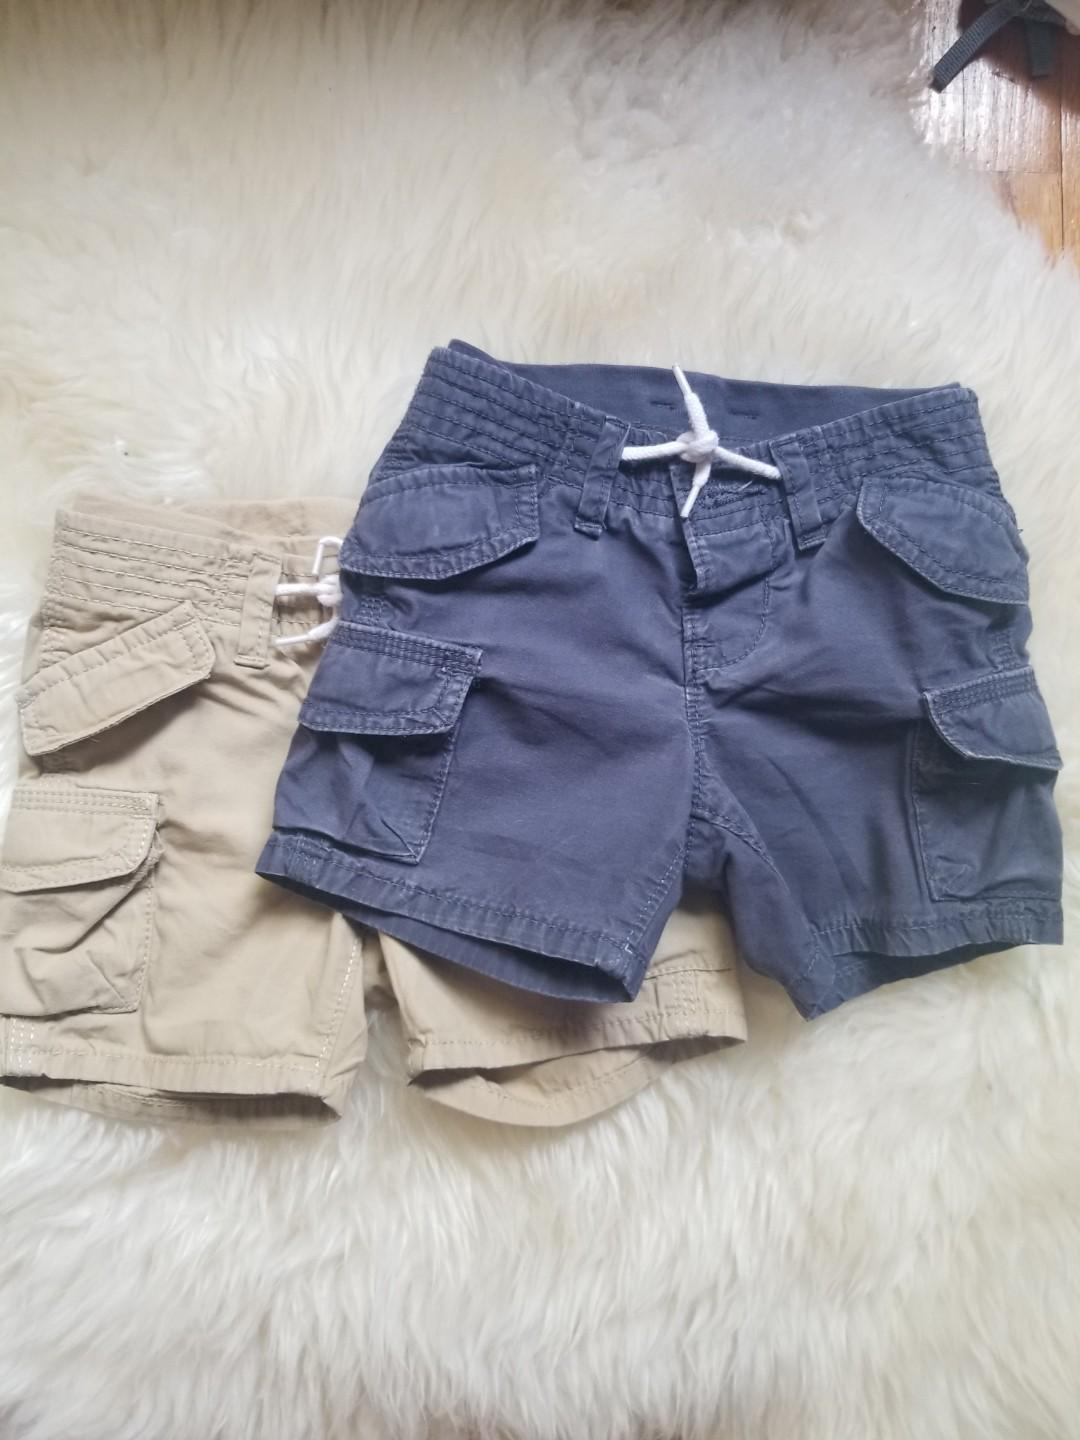 Baby Gap baby clothing lot. Size 6-12mths. Pick up 20 Bay or  Gerrard and main or Yorkville. Selling for $10 each or both for $15.  Purchased new for $29 each. New condition. See my other ads.